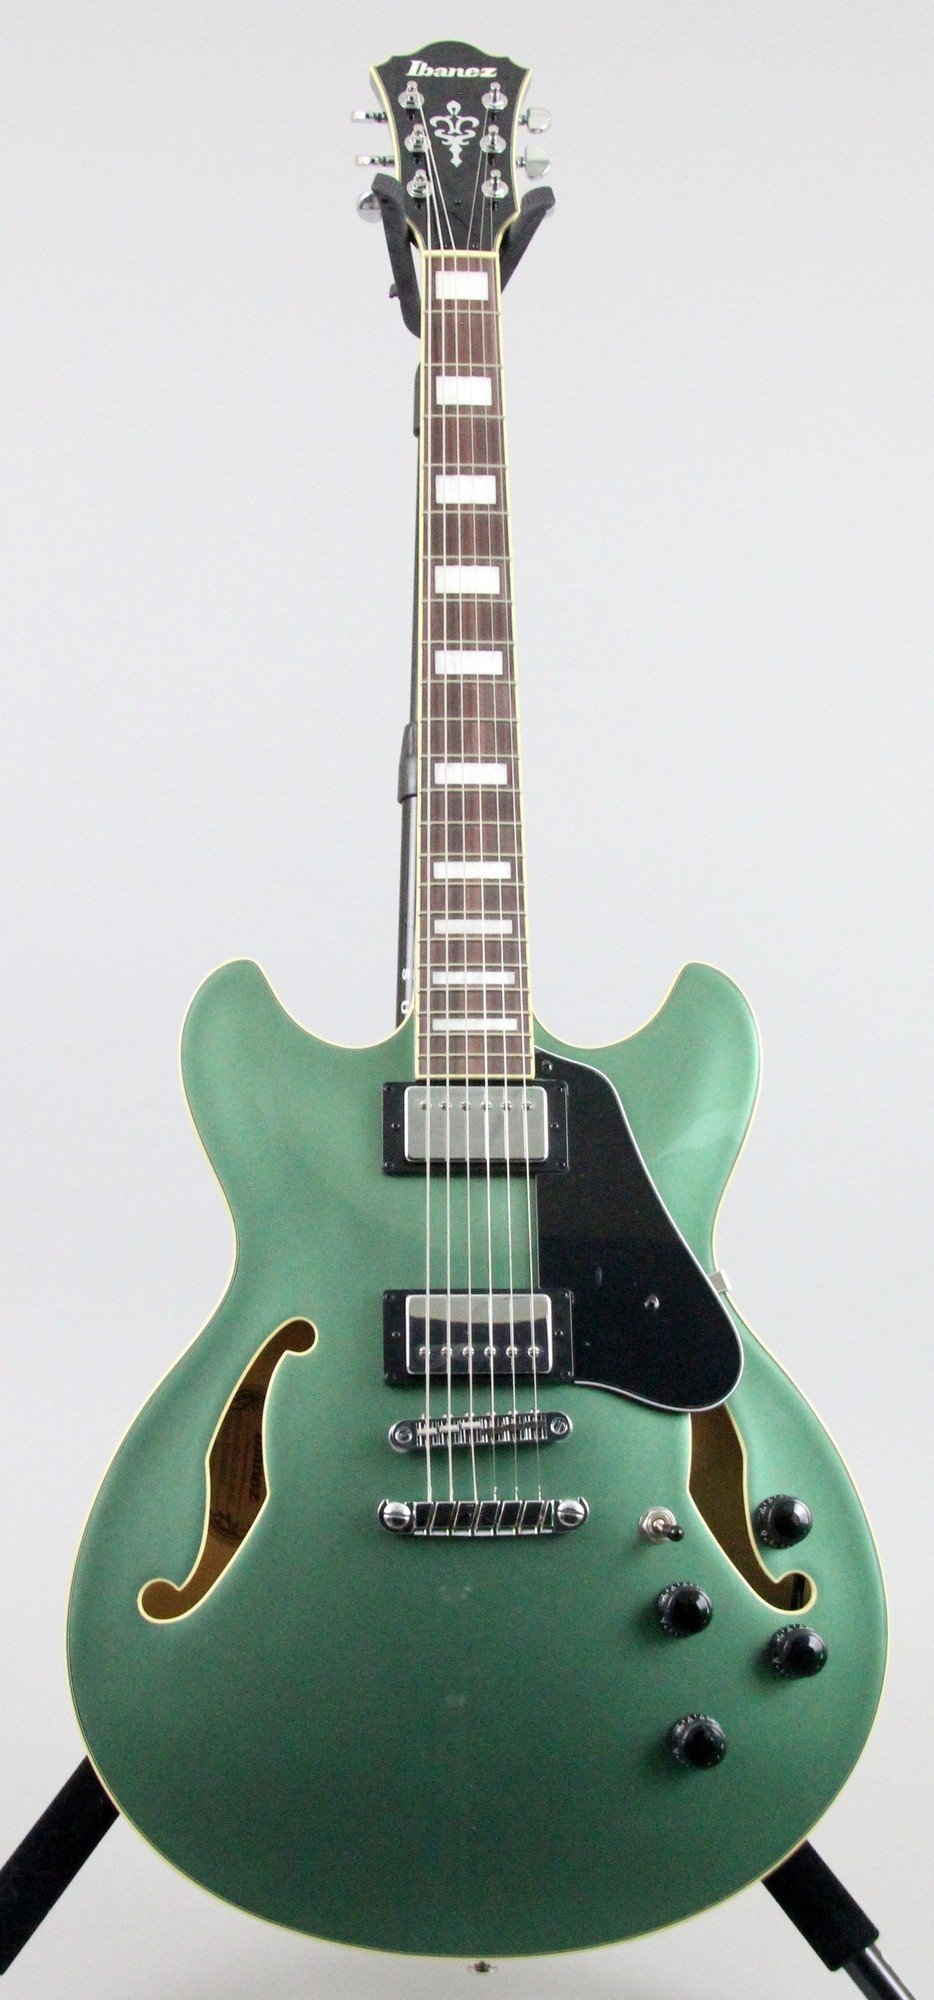 Ibanez AS73 Artcore Semi-Hollow Body Electric Guitar Olive Metallic